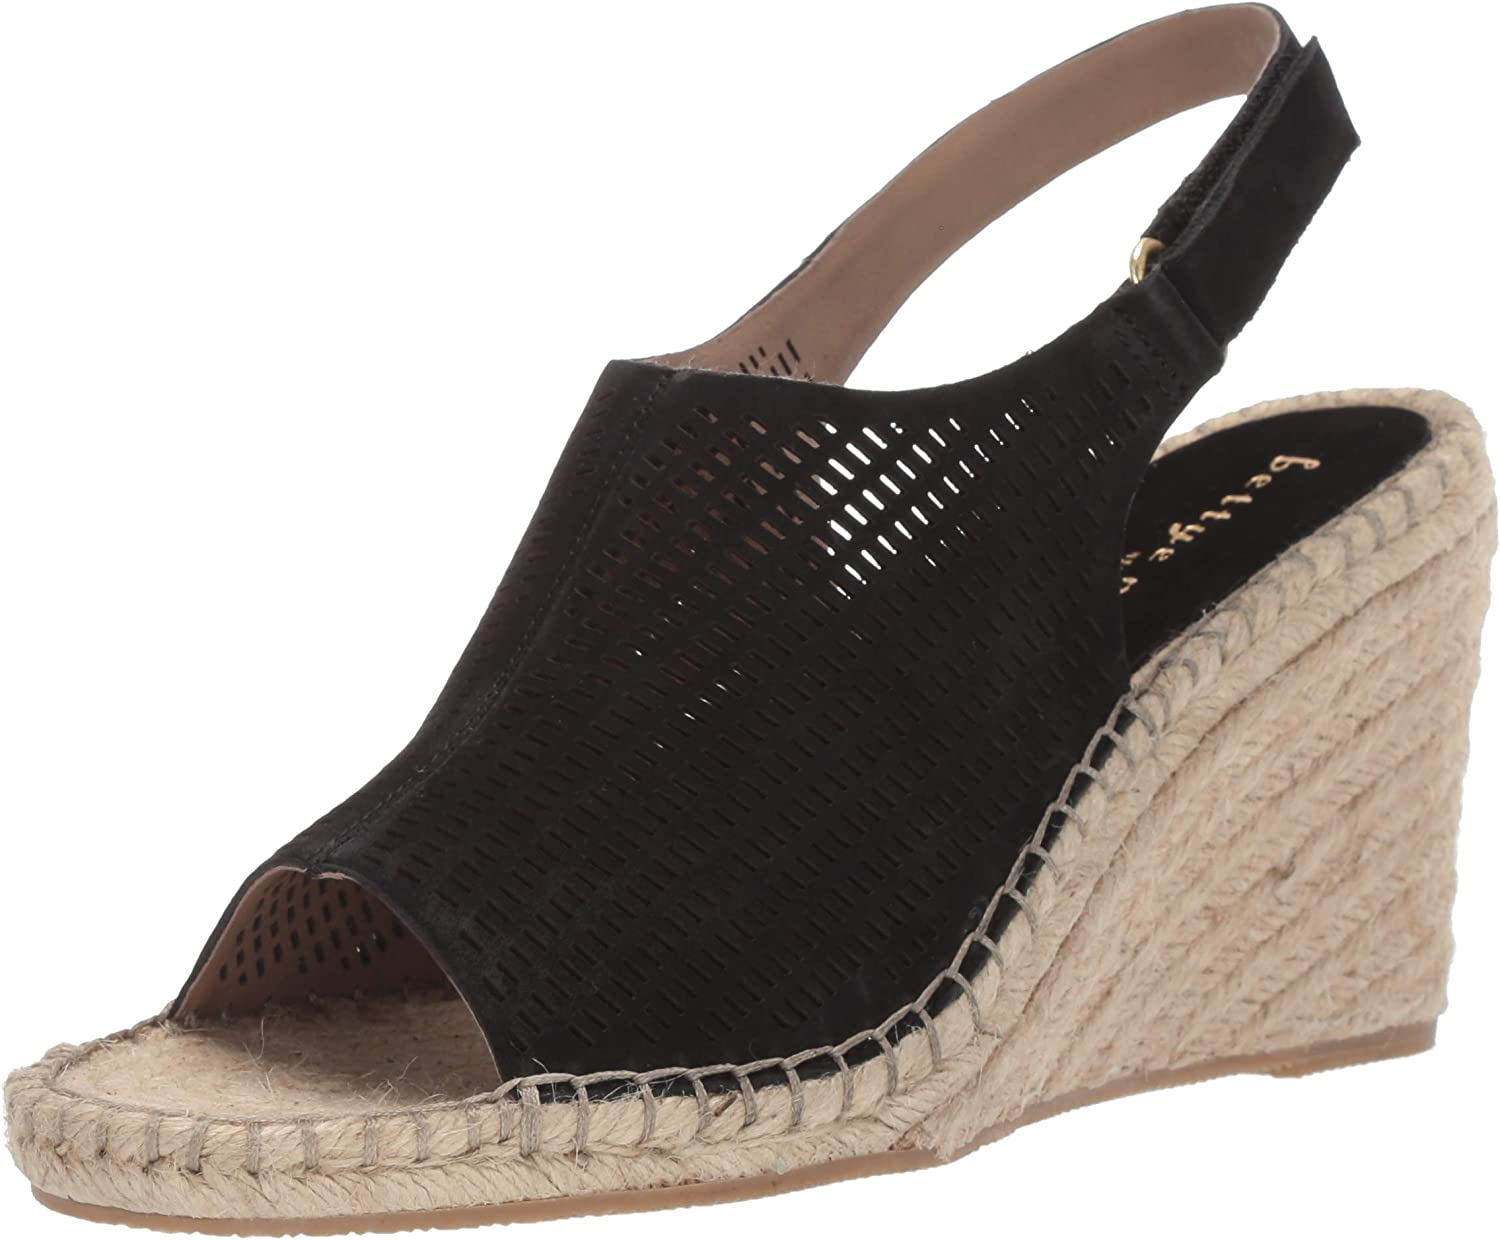 Bettye Muller Womens Vicente Espadrille Wedge Sandal